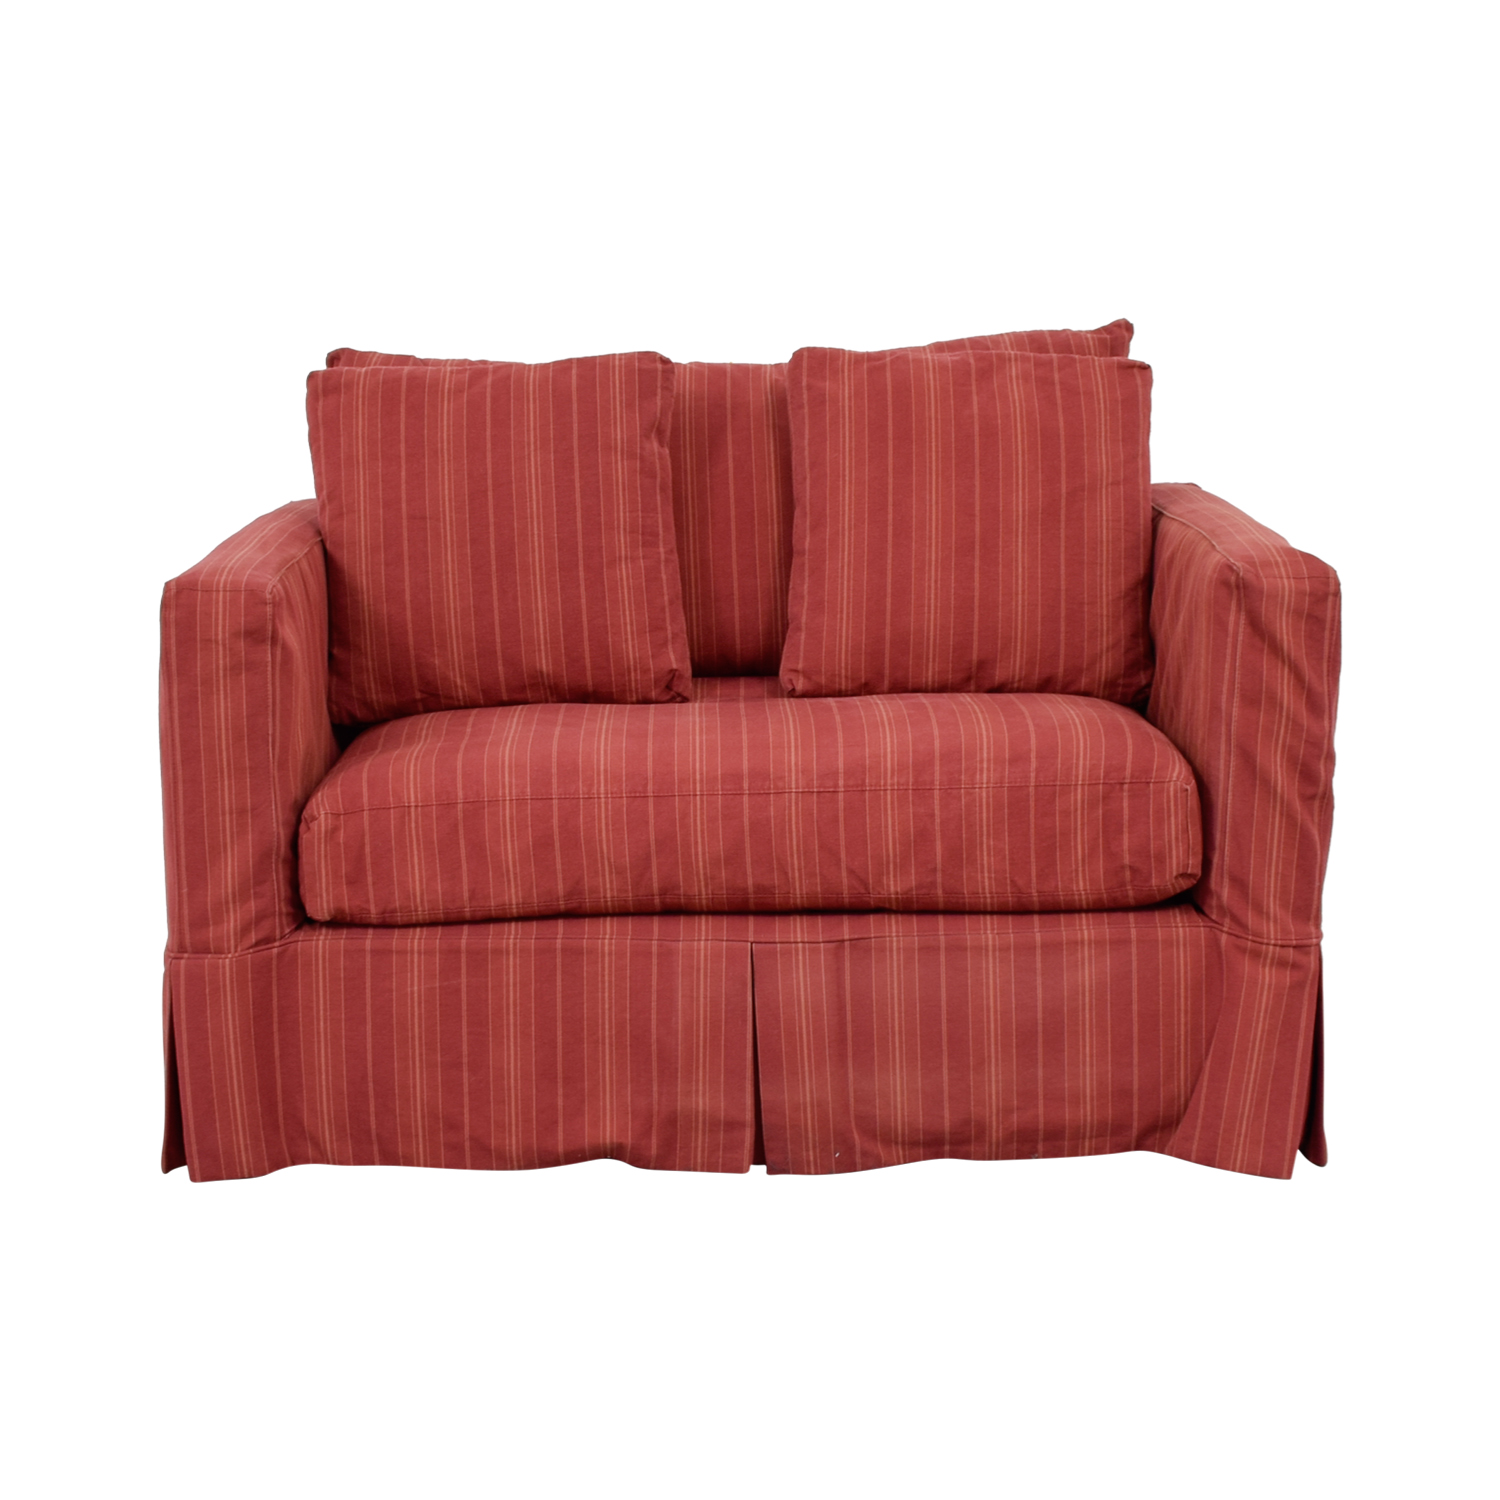 buy Crate & Barrel Willow Red Accent Chair Crate & Barrel Accent Chairs